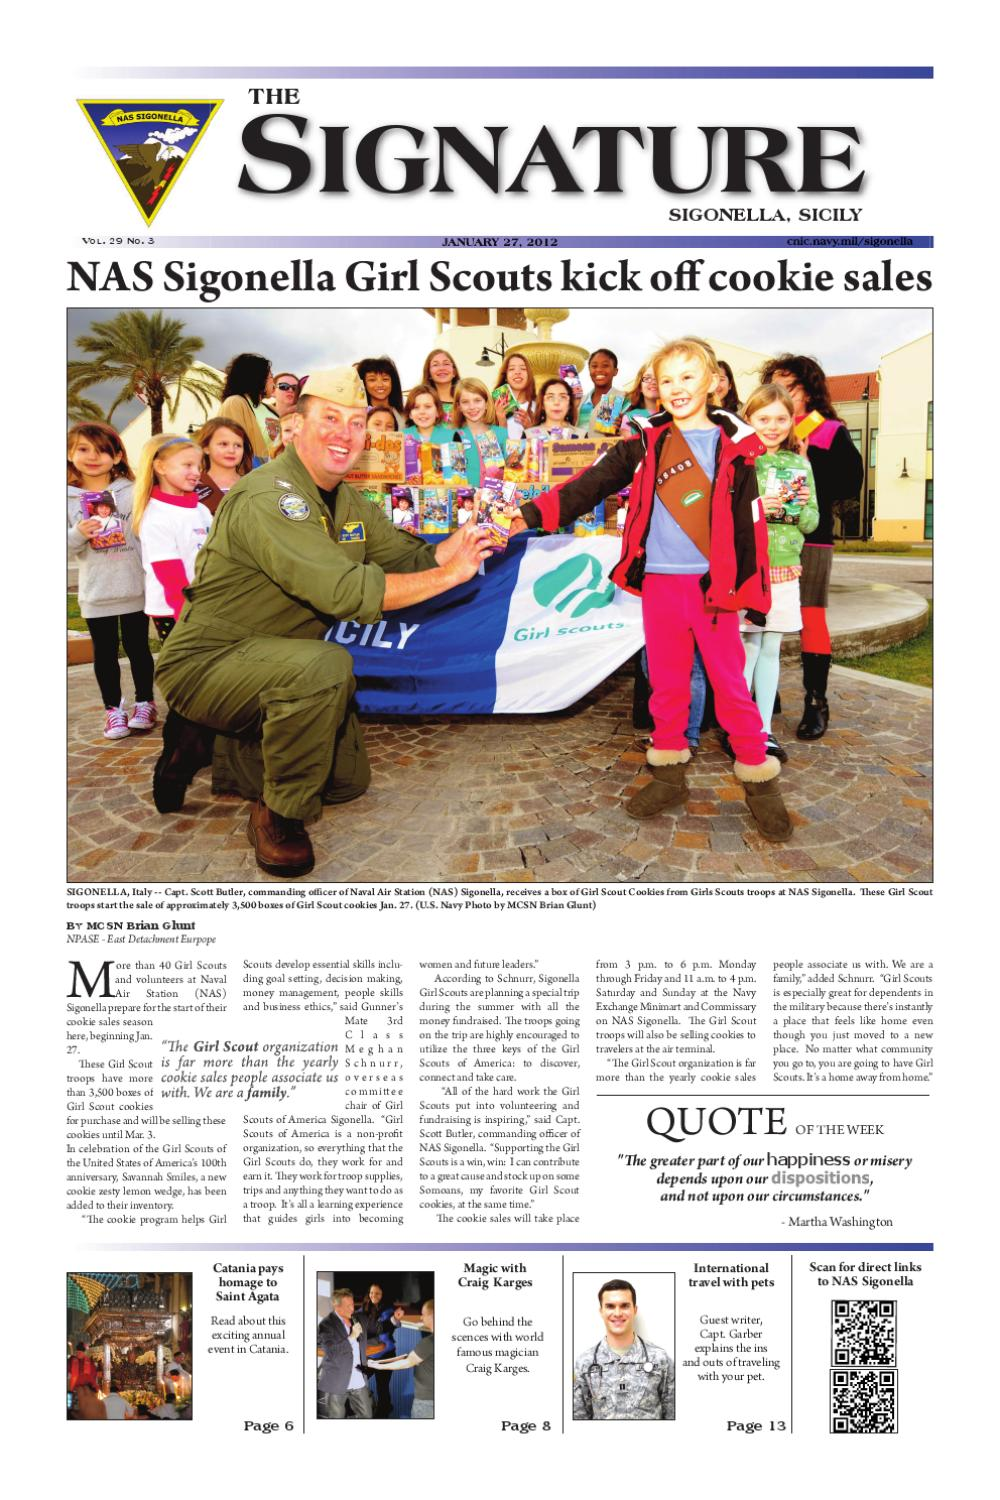 The January 27 issue of The Signature by NAS Sigonella